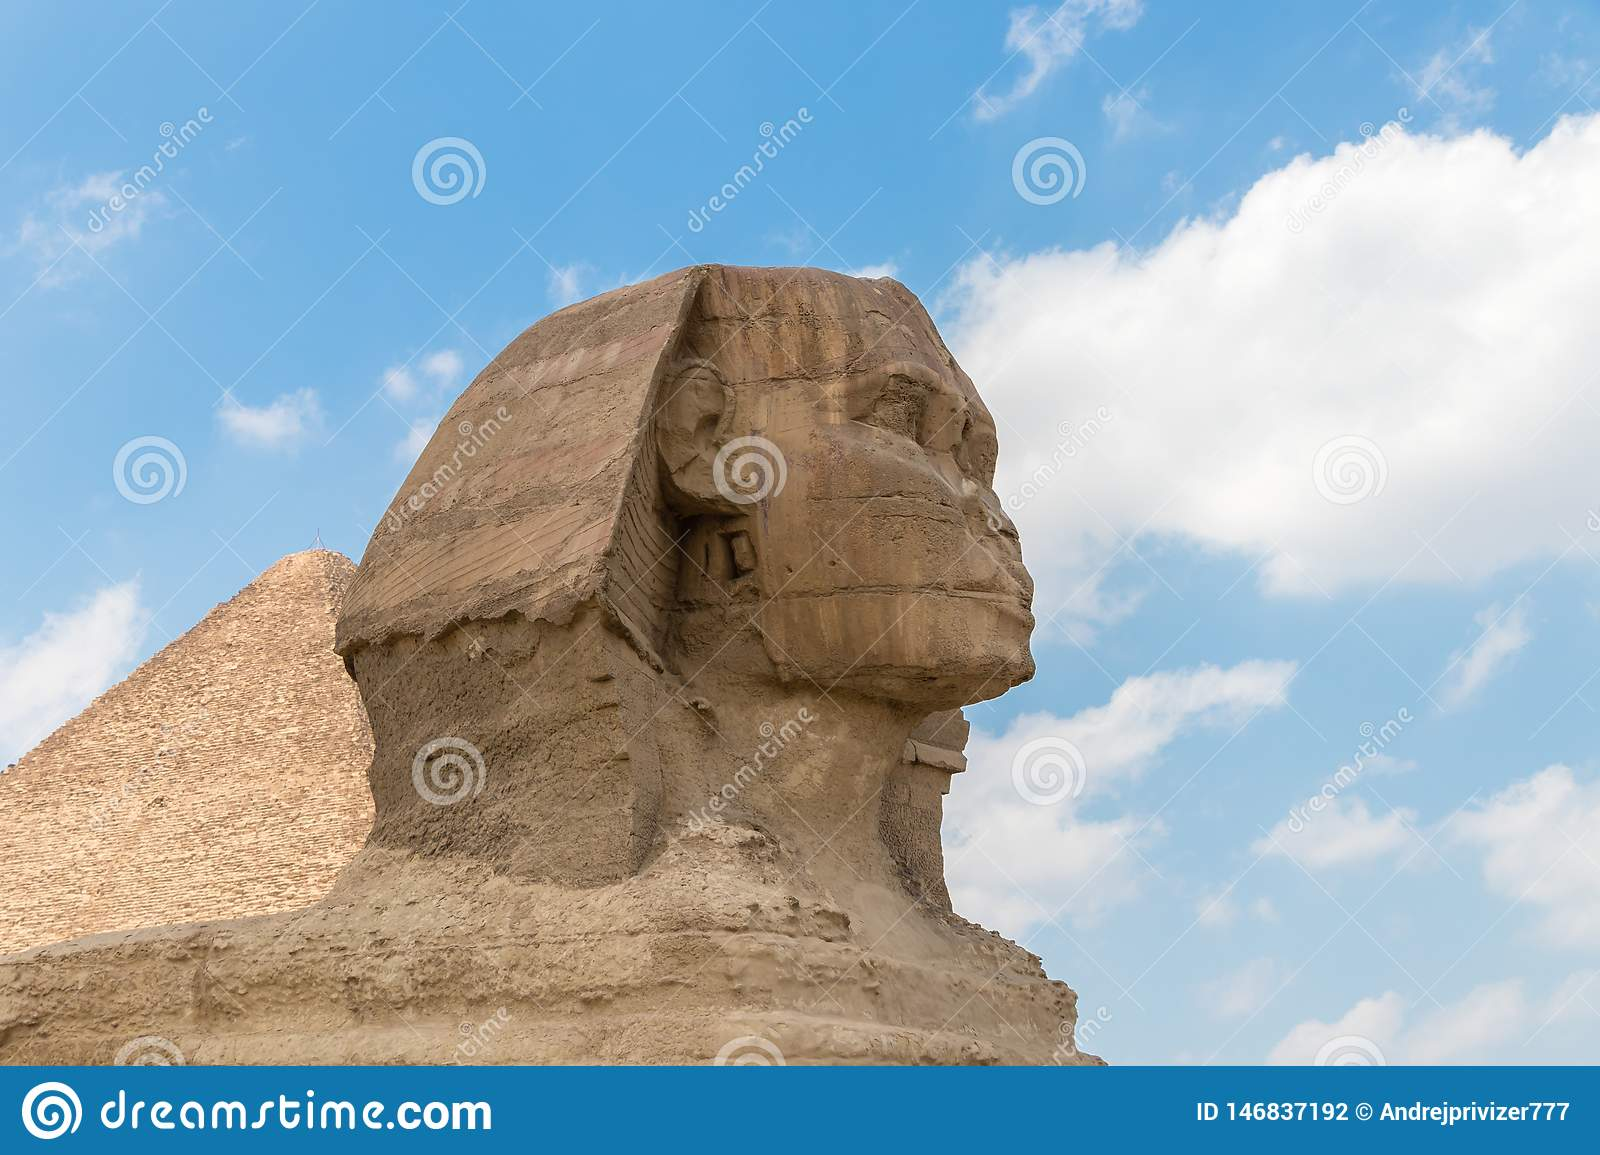 Close-up of a famous Egyptian Sphinx in Egypt